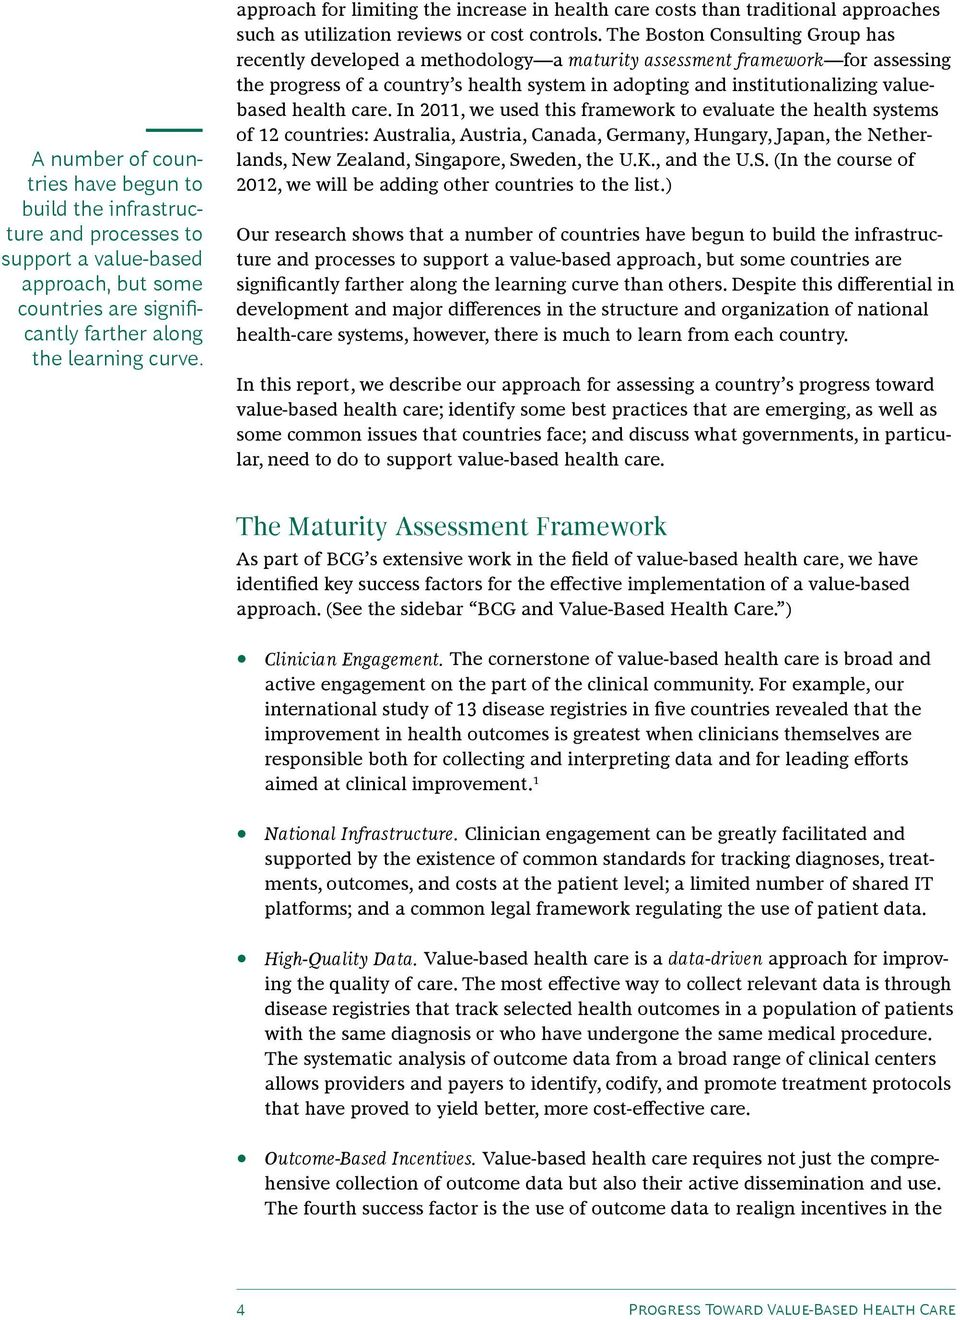 The Boston Consulting Group has recently developed a methodology a maturity assessment framework for assessing the progress of a country s health system in adopting and institutionalizing valuebased